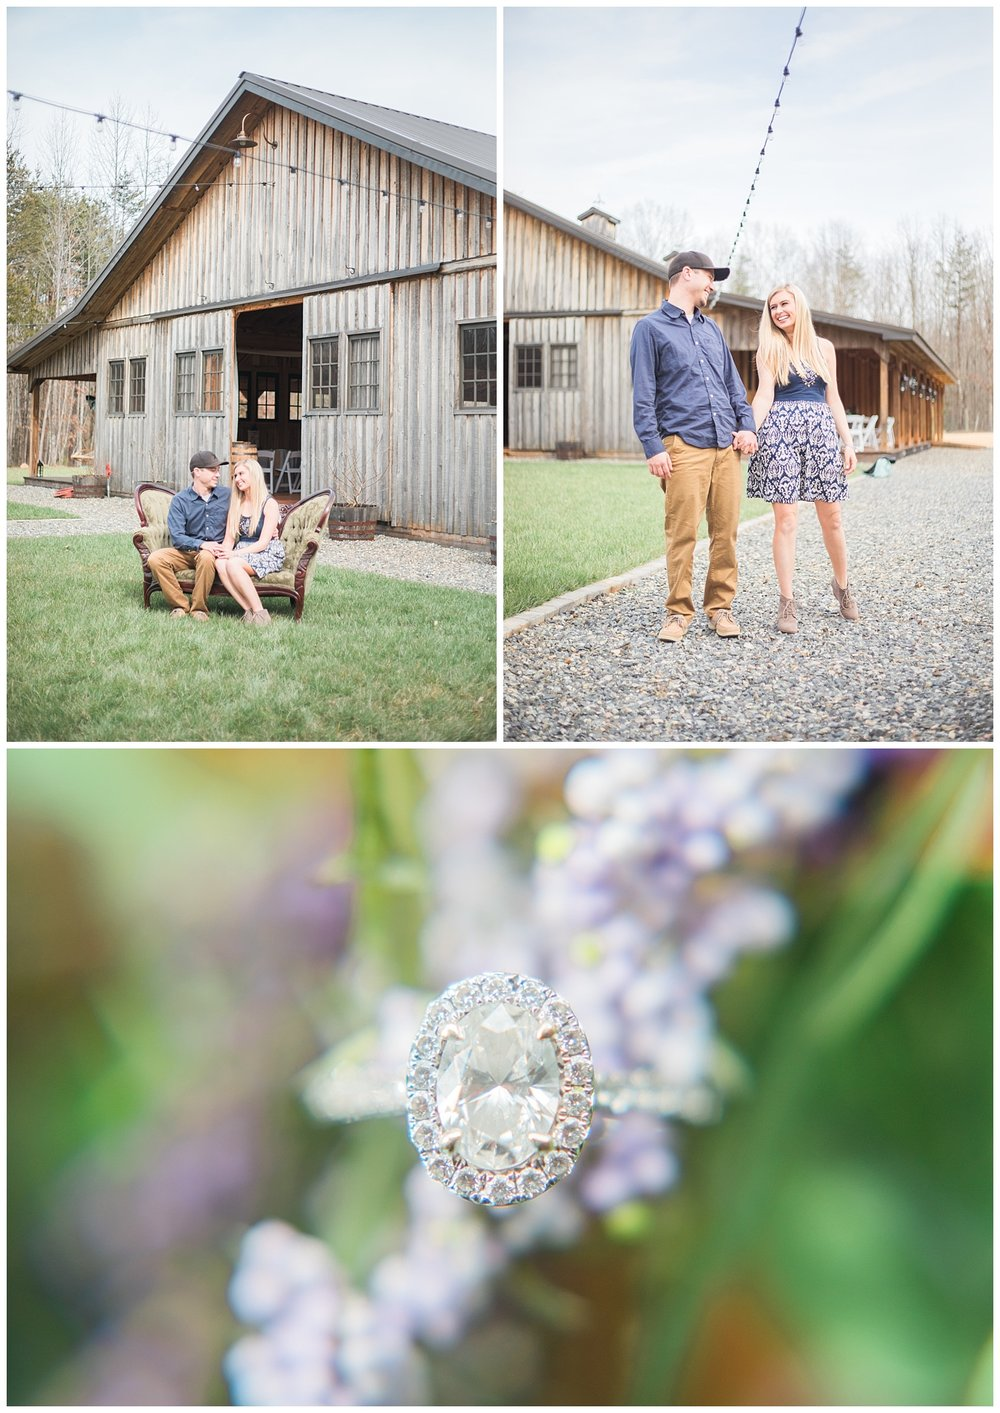 Virginia Engagement Photographer - MJ Mendoza Photography